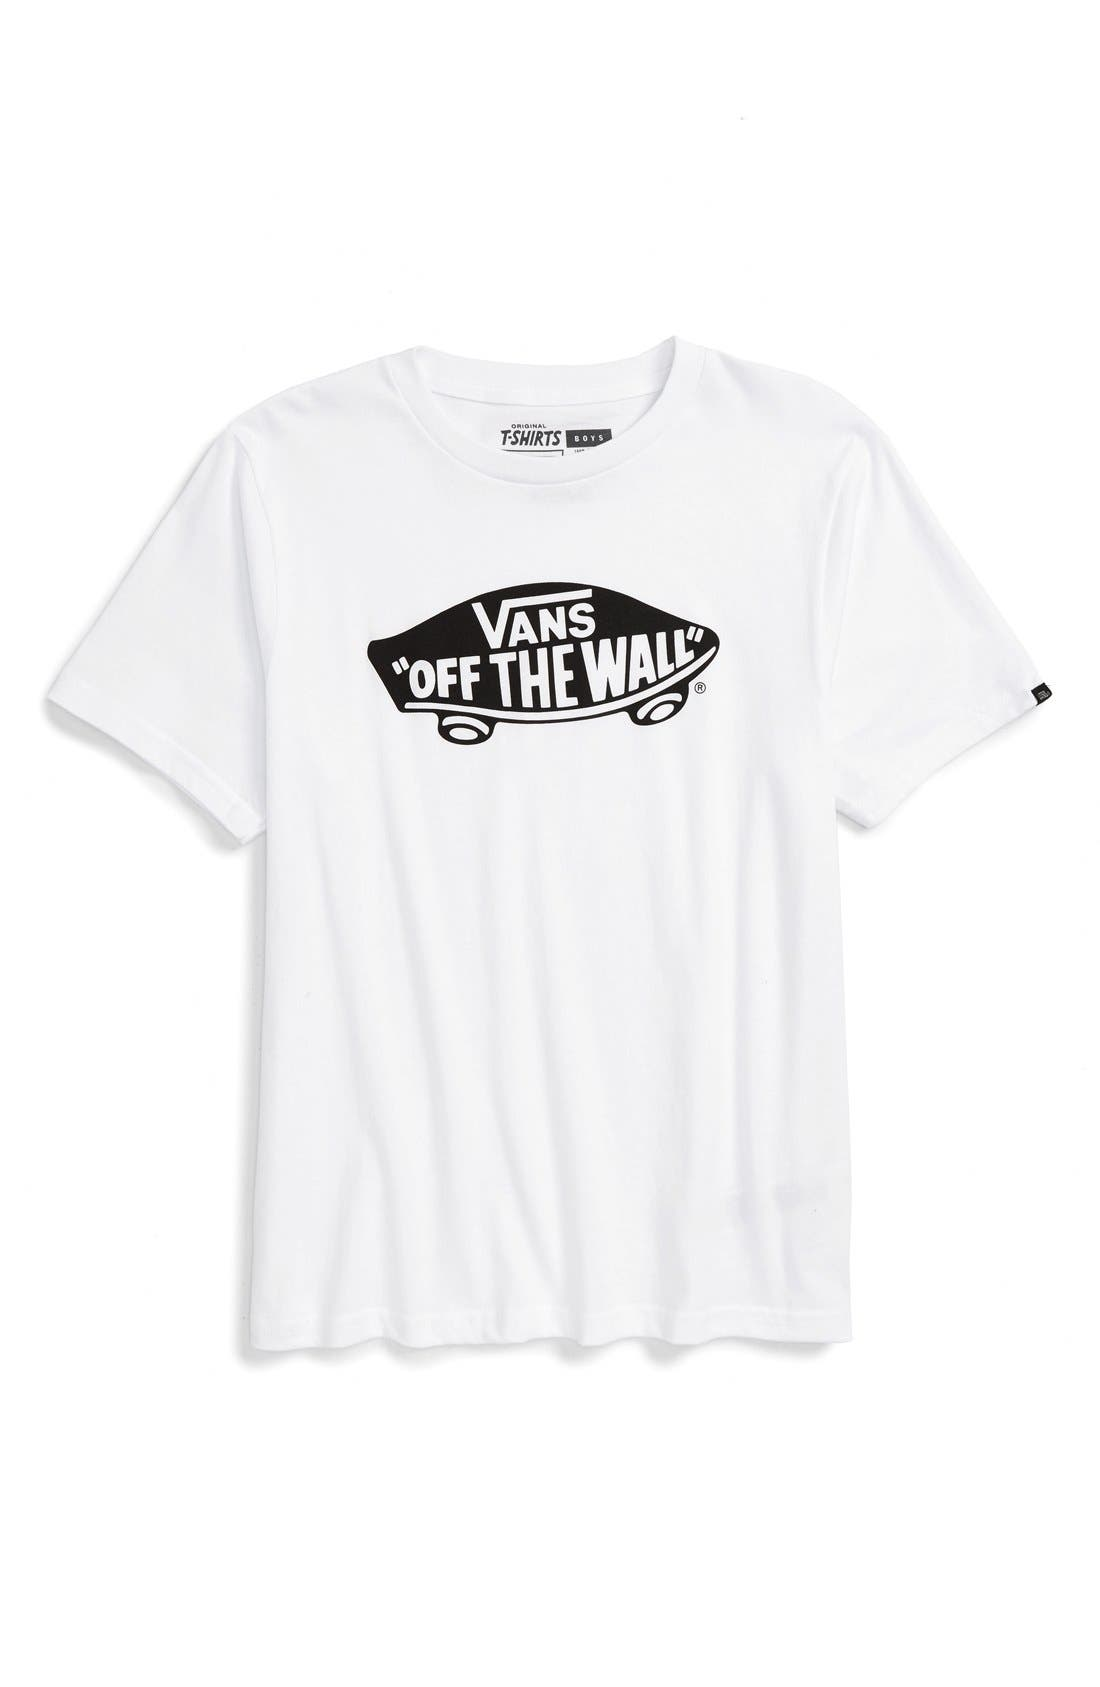 Vans 'Off The Wall' Graphic T-Shirt (Big Boys)